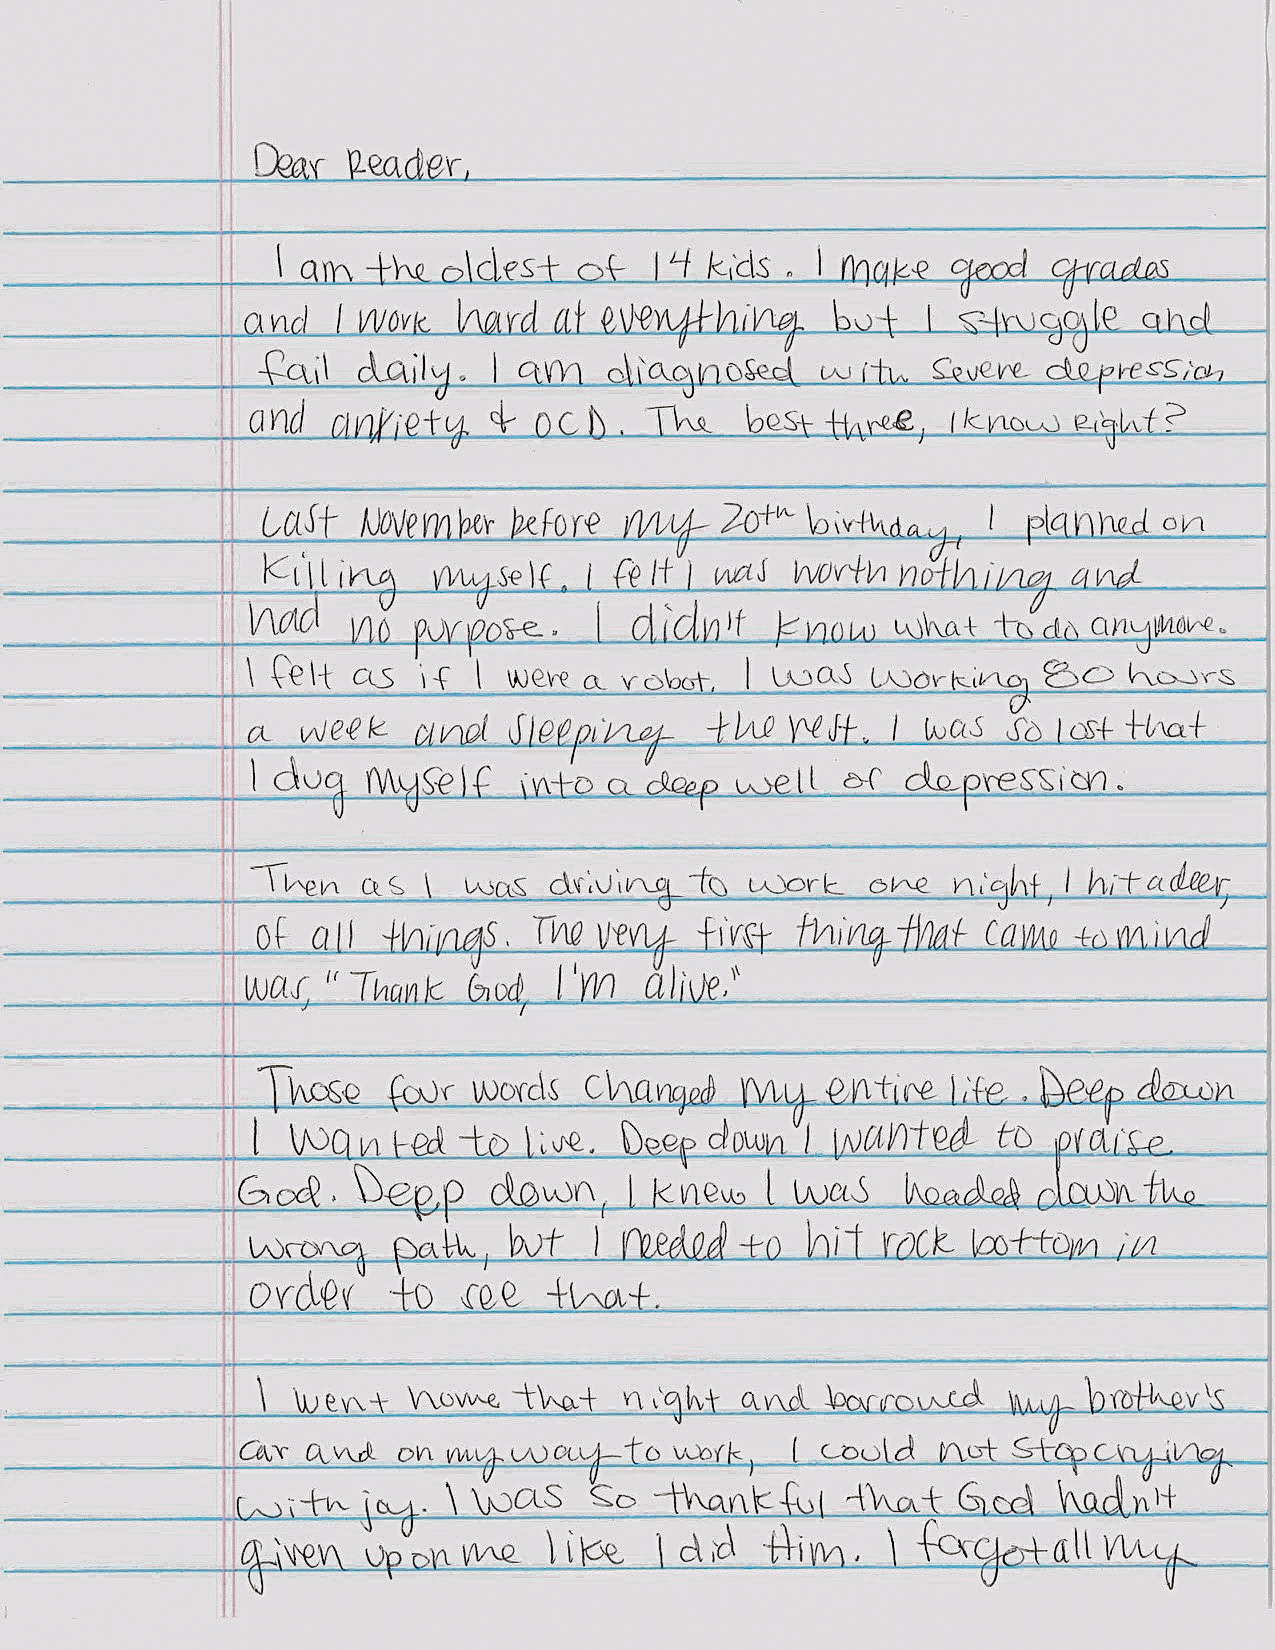 The-Catholic-Woman Letters-5.jpg